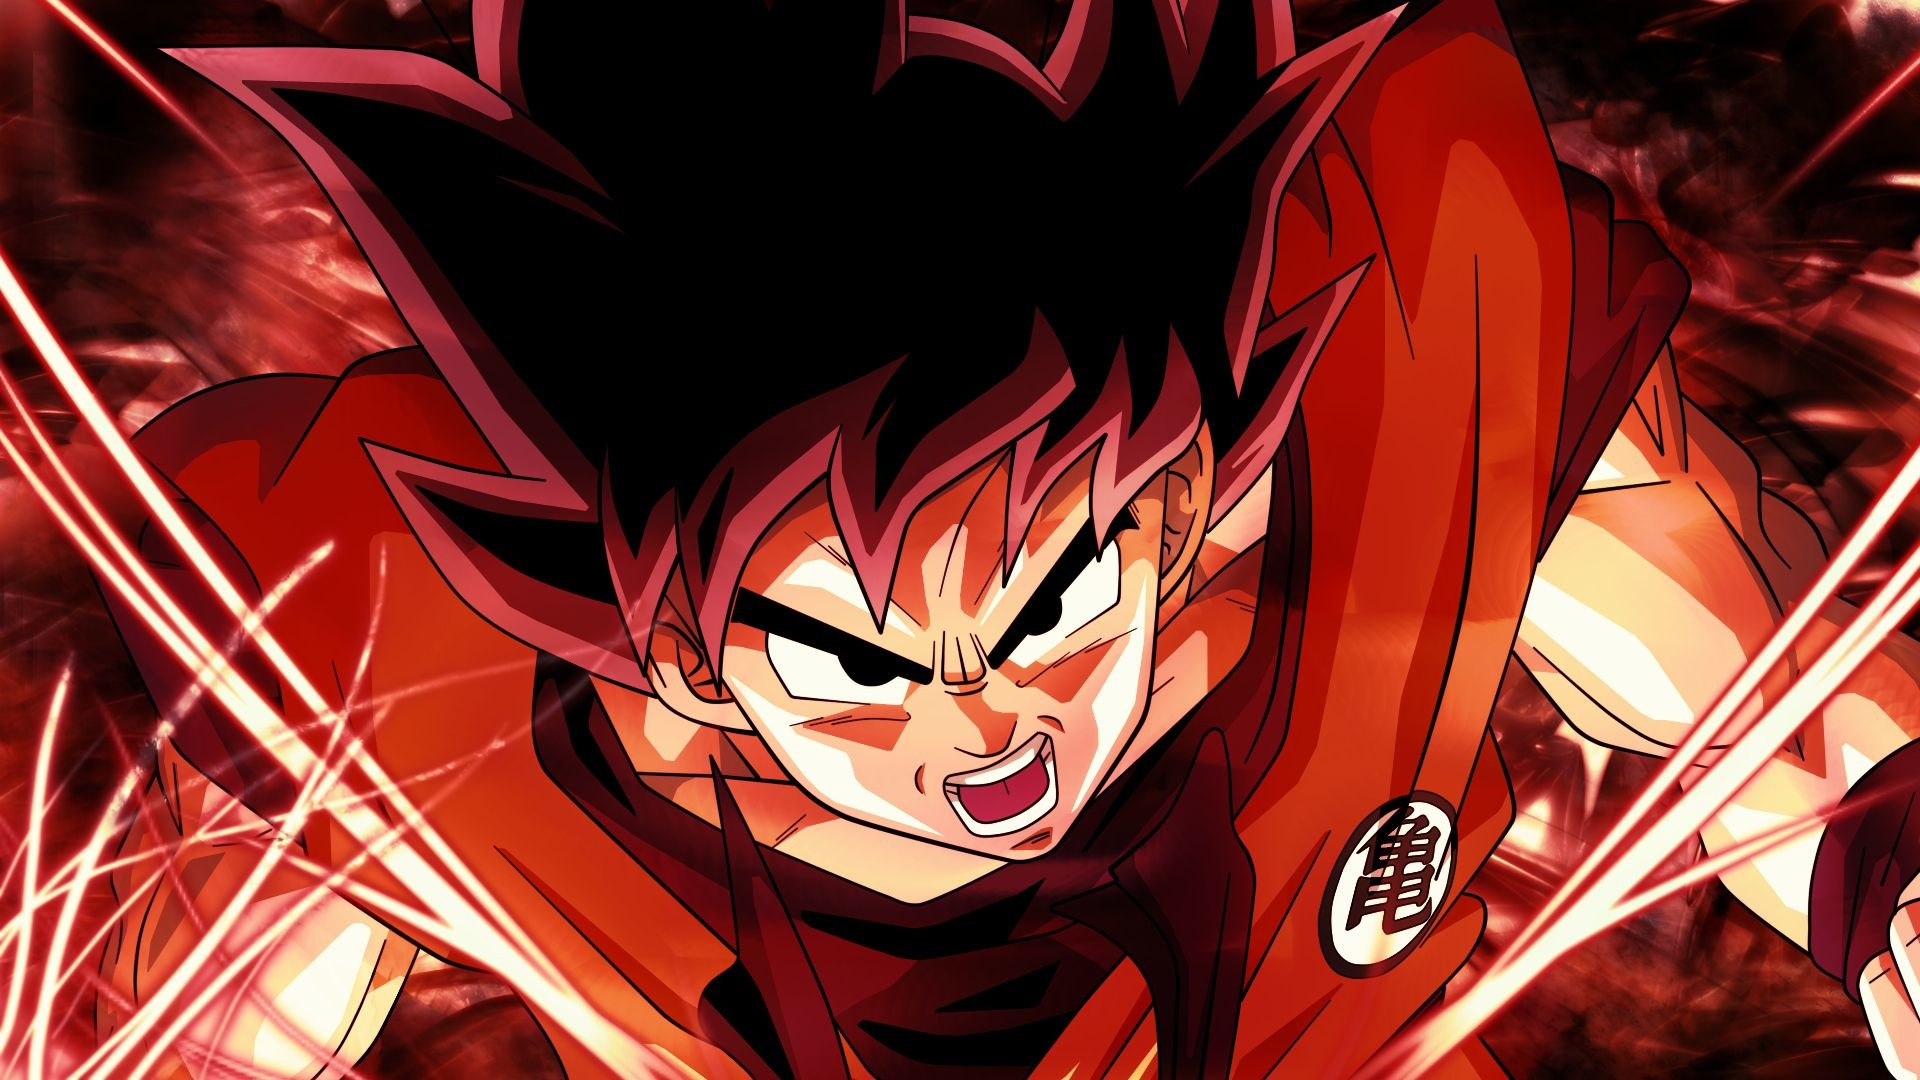 Dragon Ball Z Goku Wallpapers 65 Background Pictures